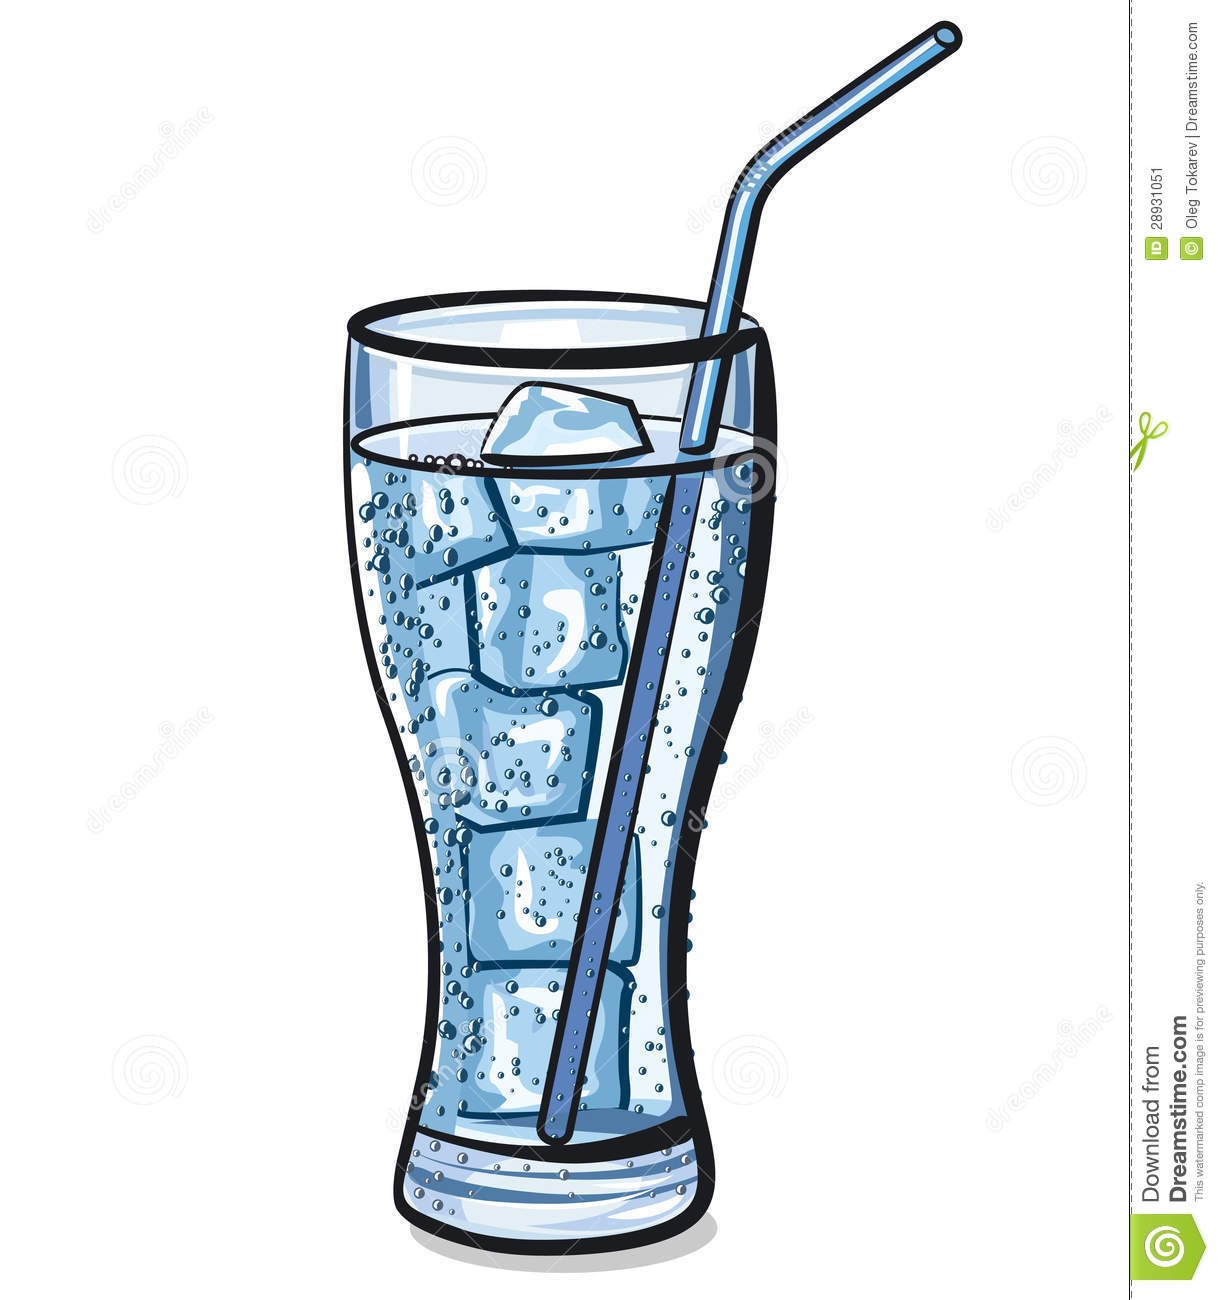 Glass of Water with Ice Clip Art